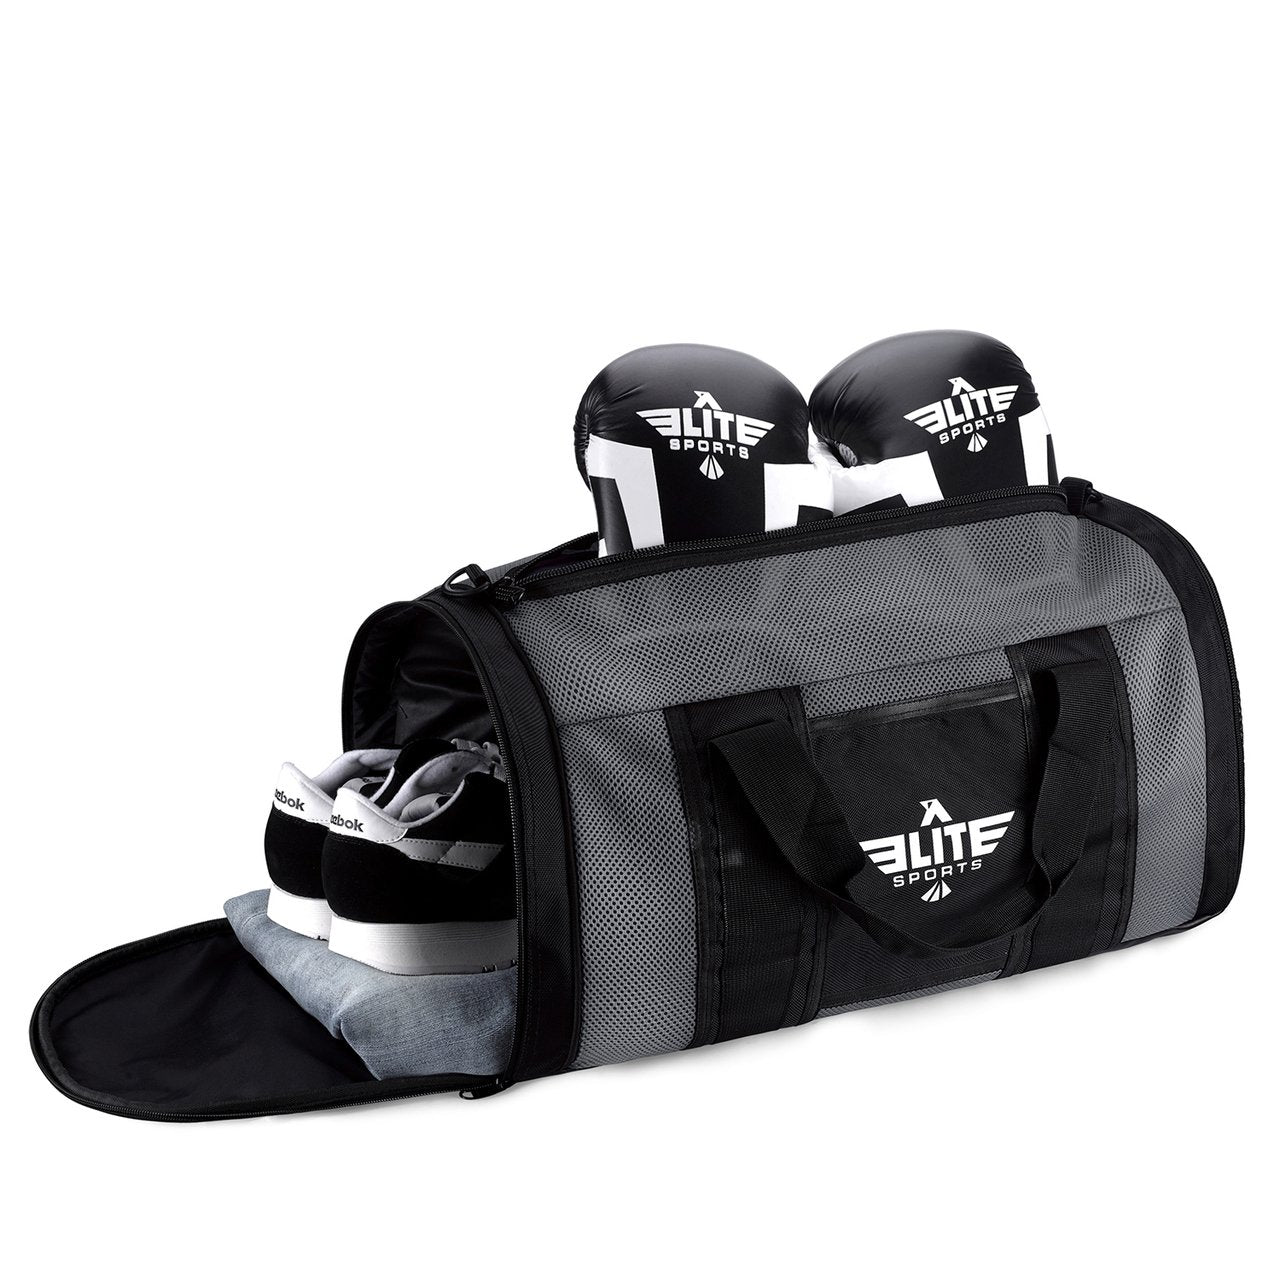 Load image into Gallery viewer, Elite Sports Mesh Gray Large Karate Gear Gym Bag